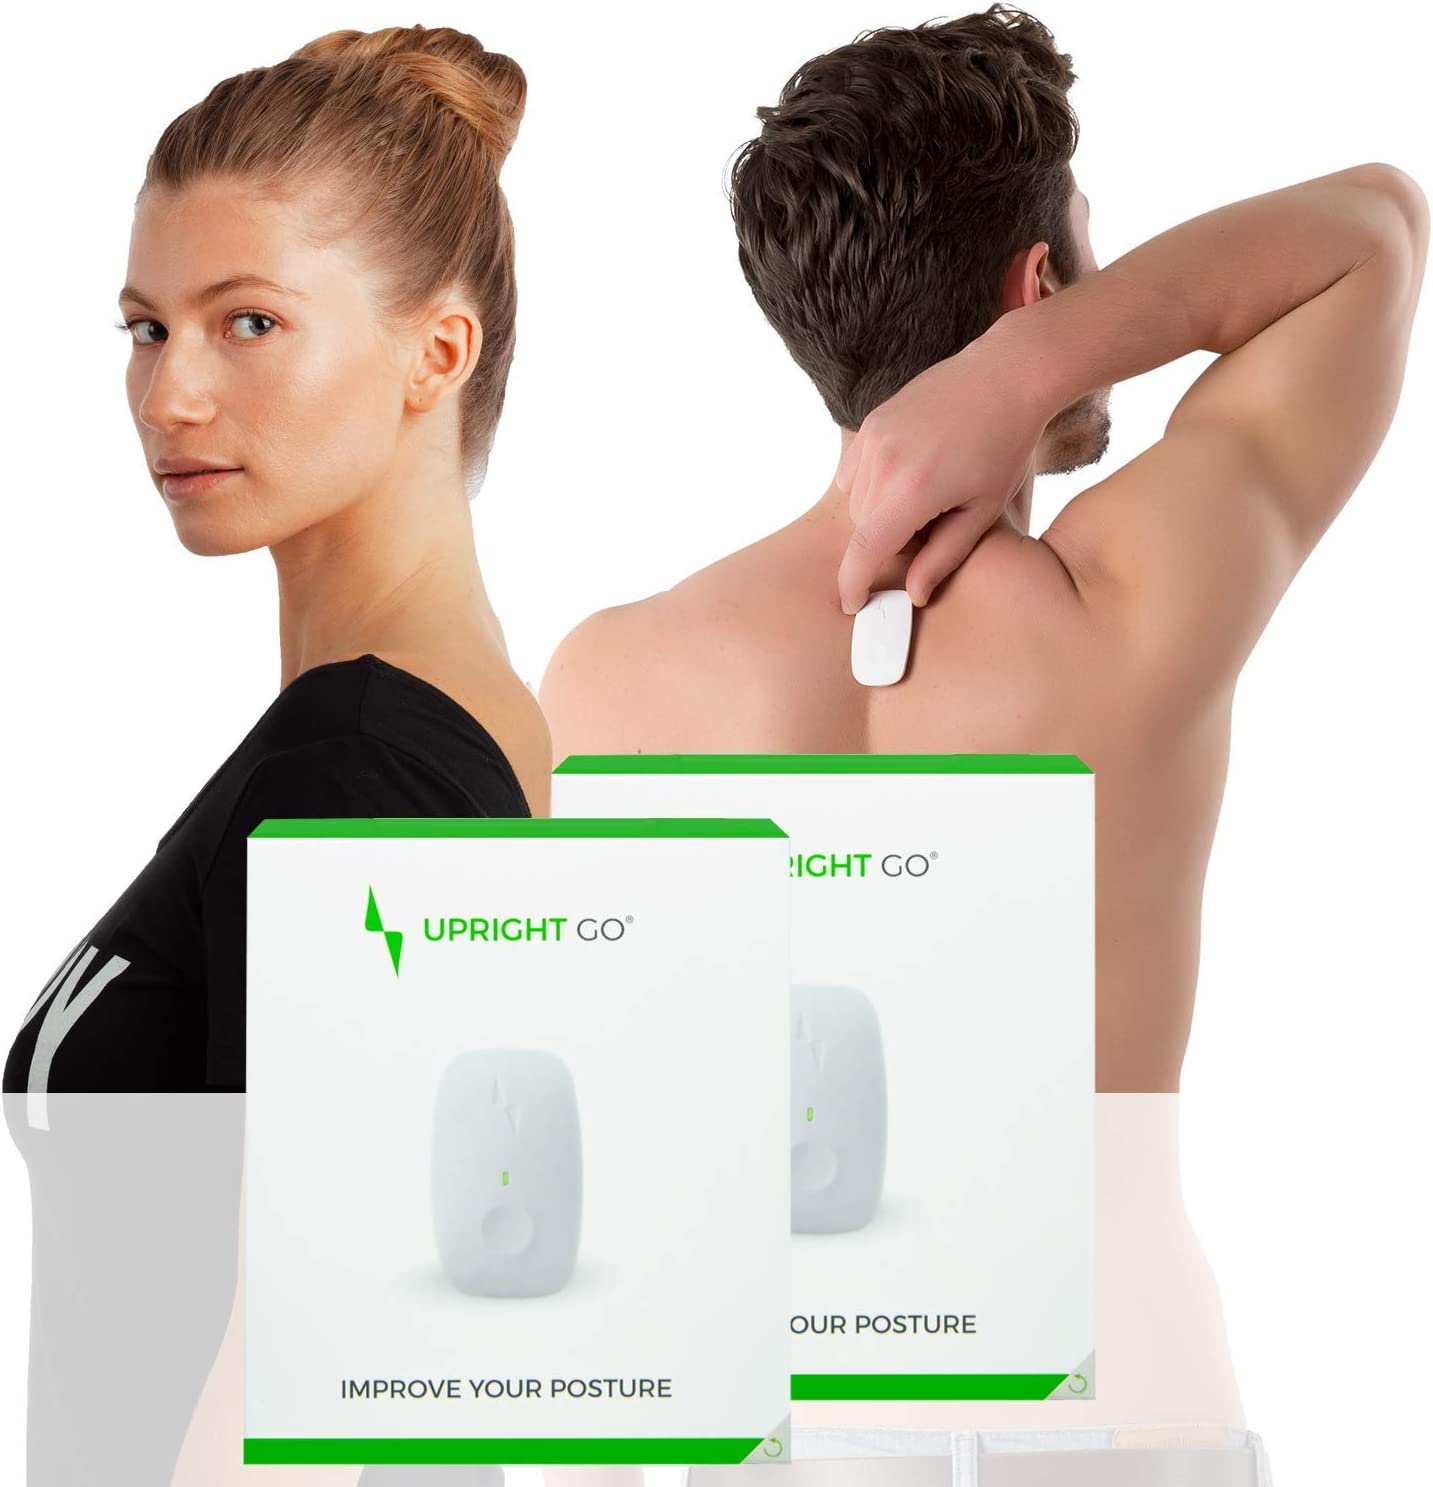 Upright GO Original Double Pack Posture Trainer and Corrector for Back Strapless, Discrete and Easy to Use Complete with App and Training Plan Back Health Benefits and Confidence Builder